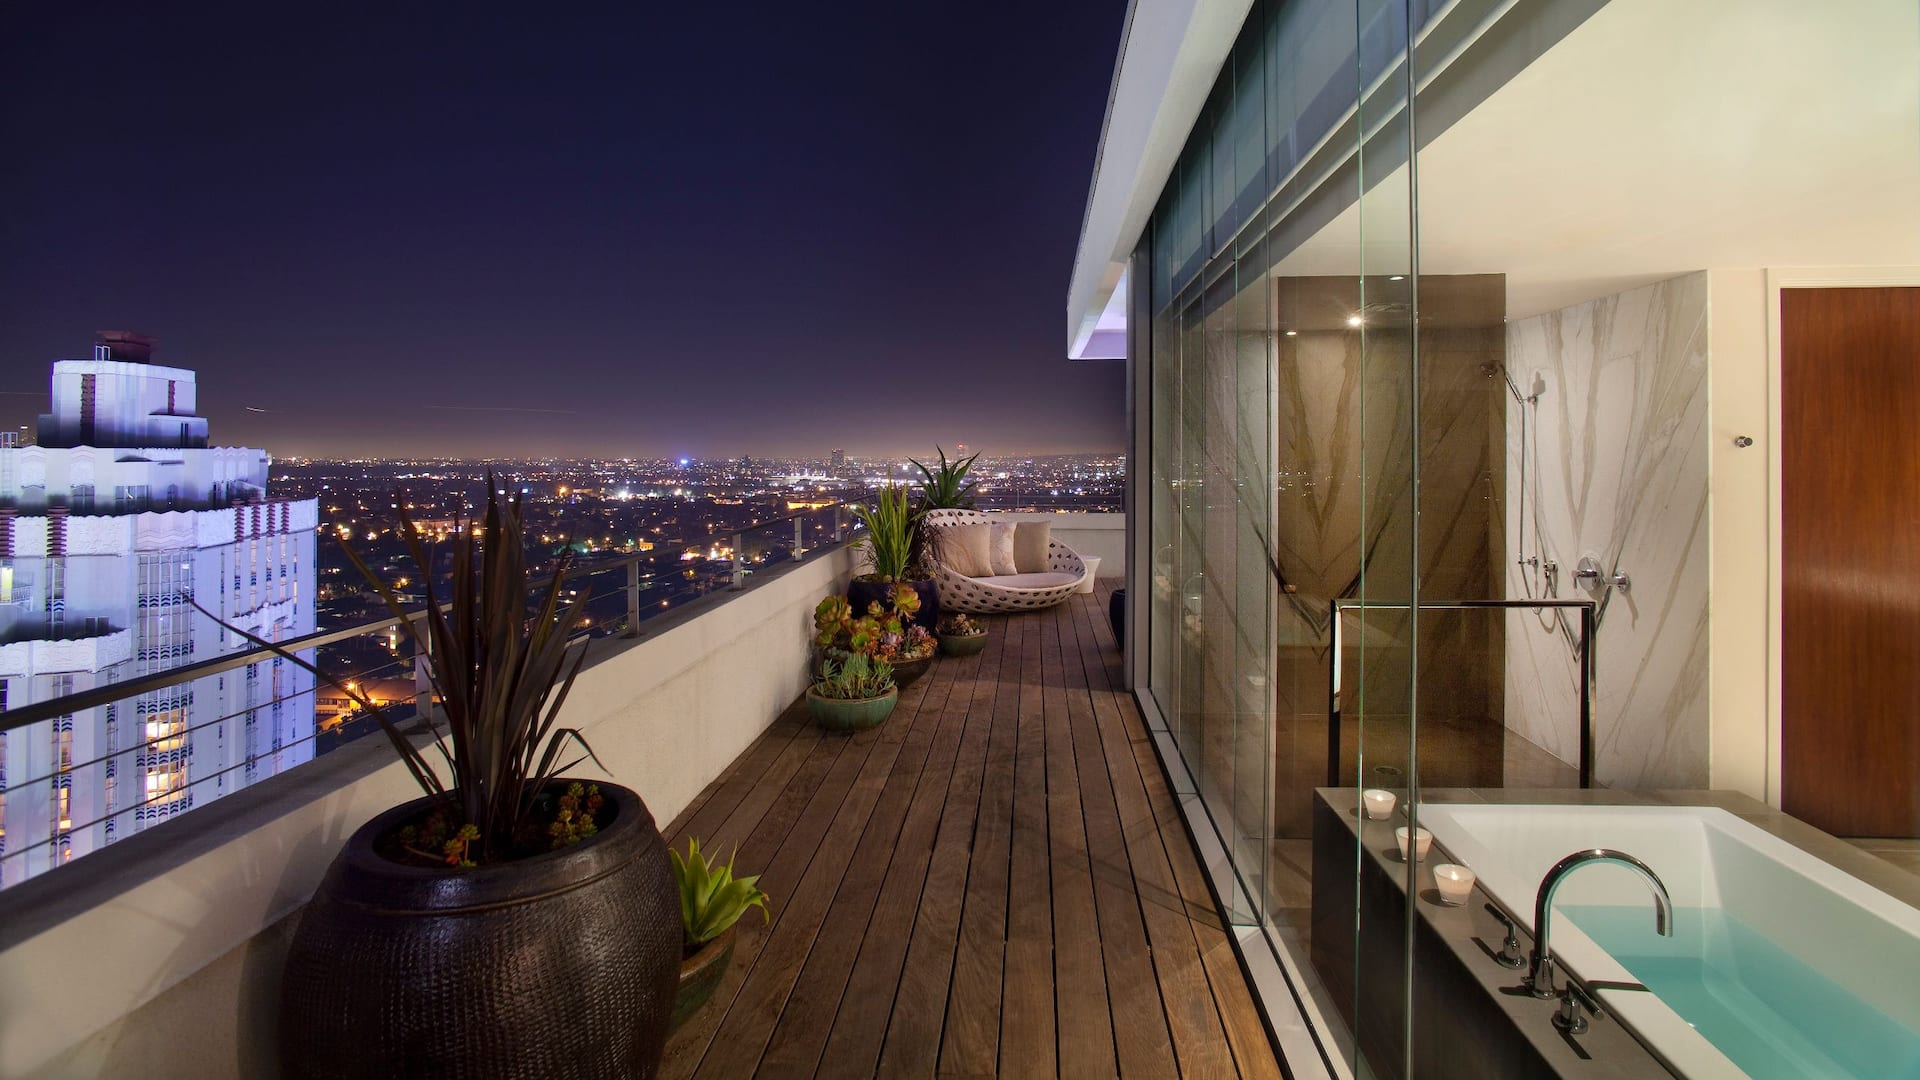 Penthouse Balcony Bathroom